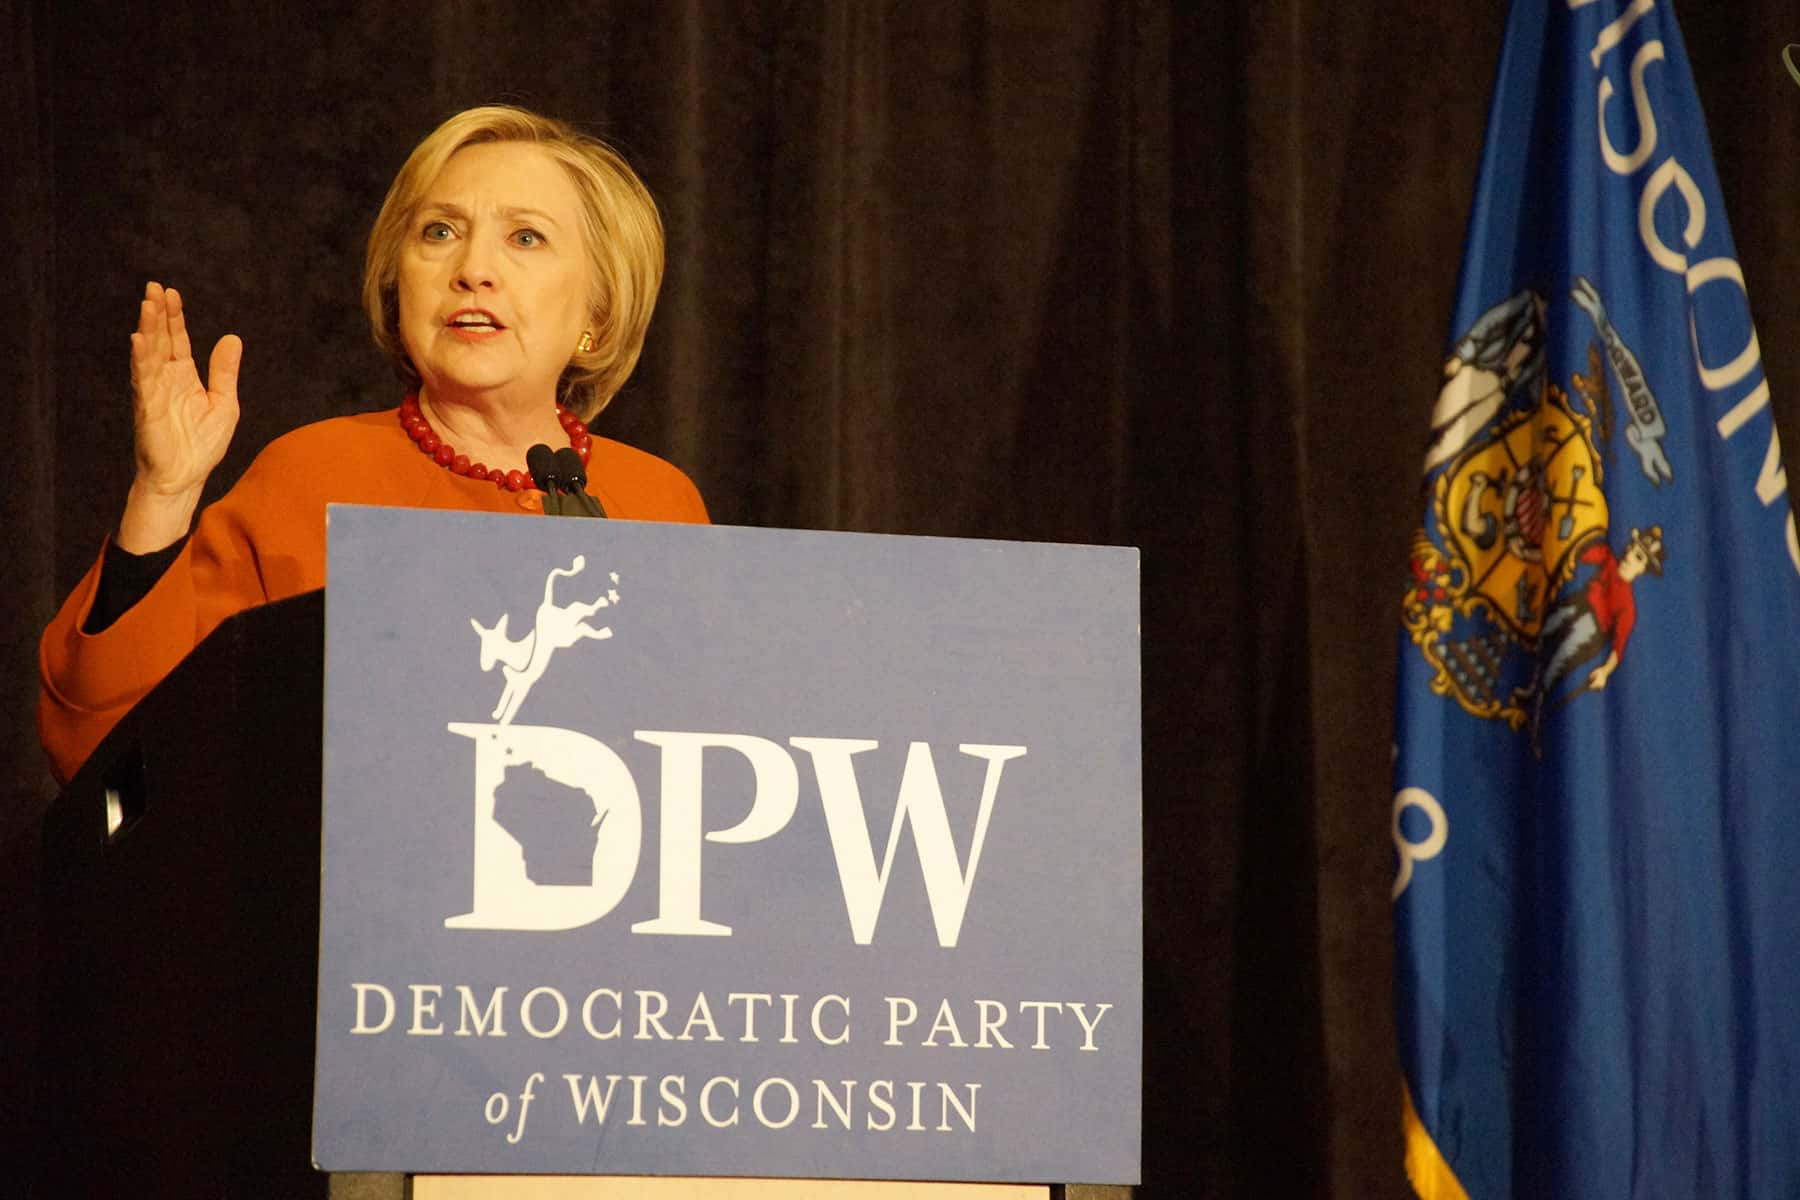 040216_DemParty_2501